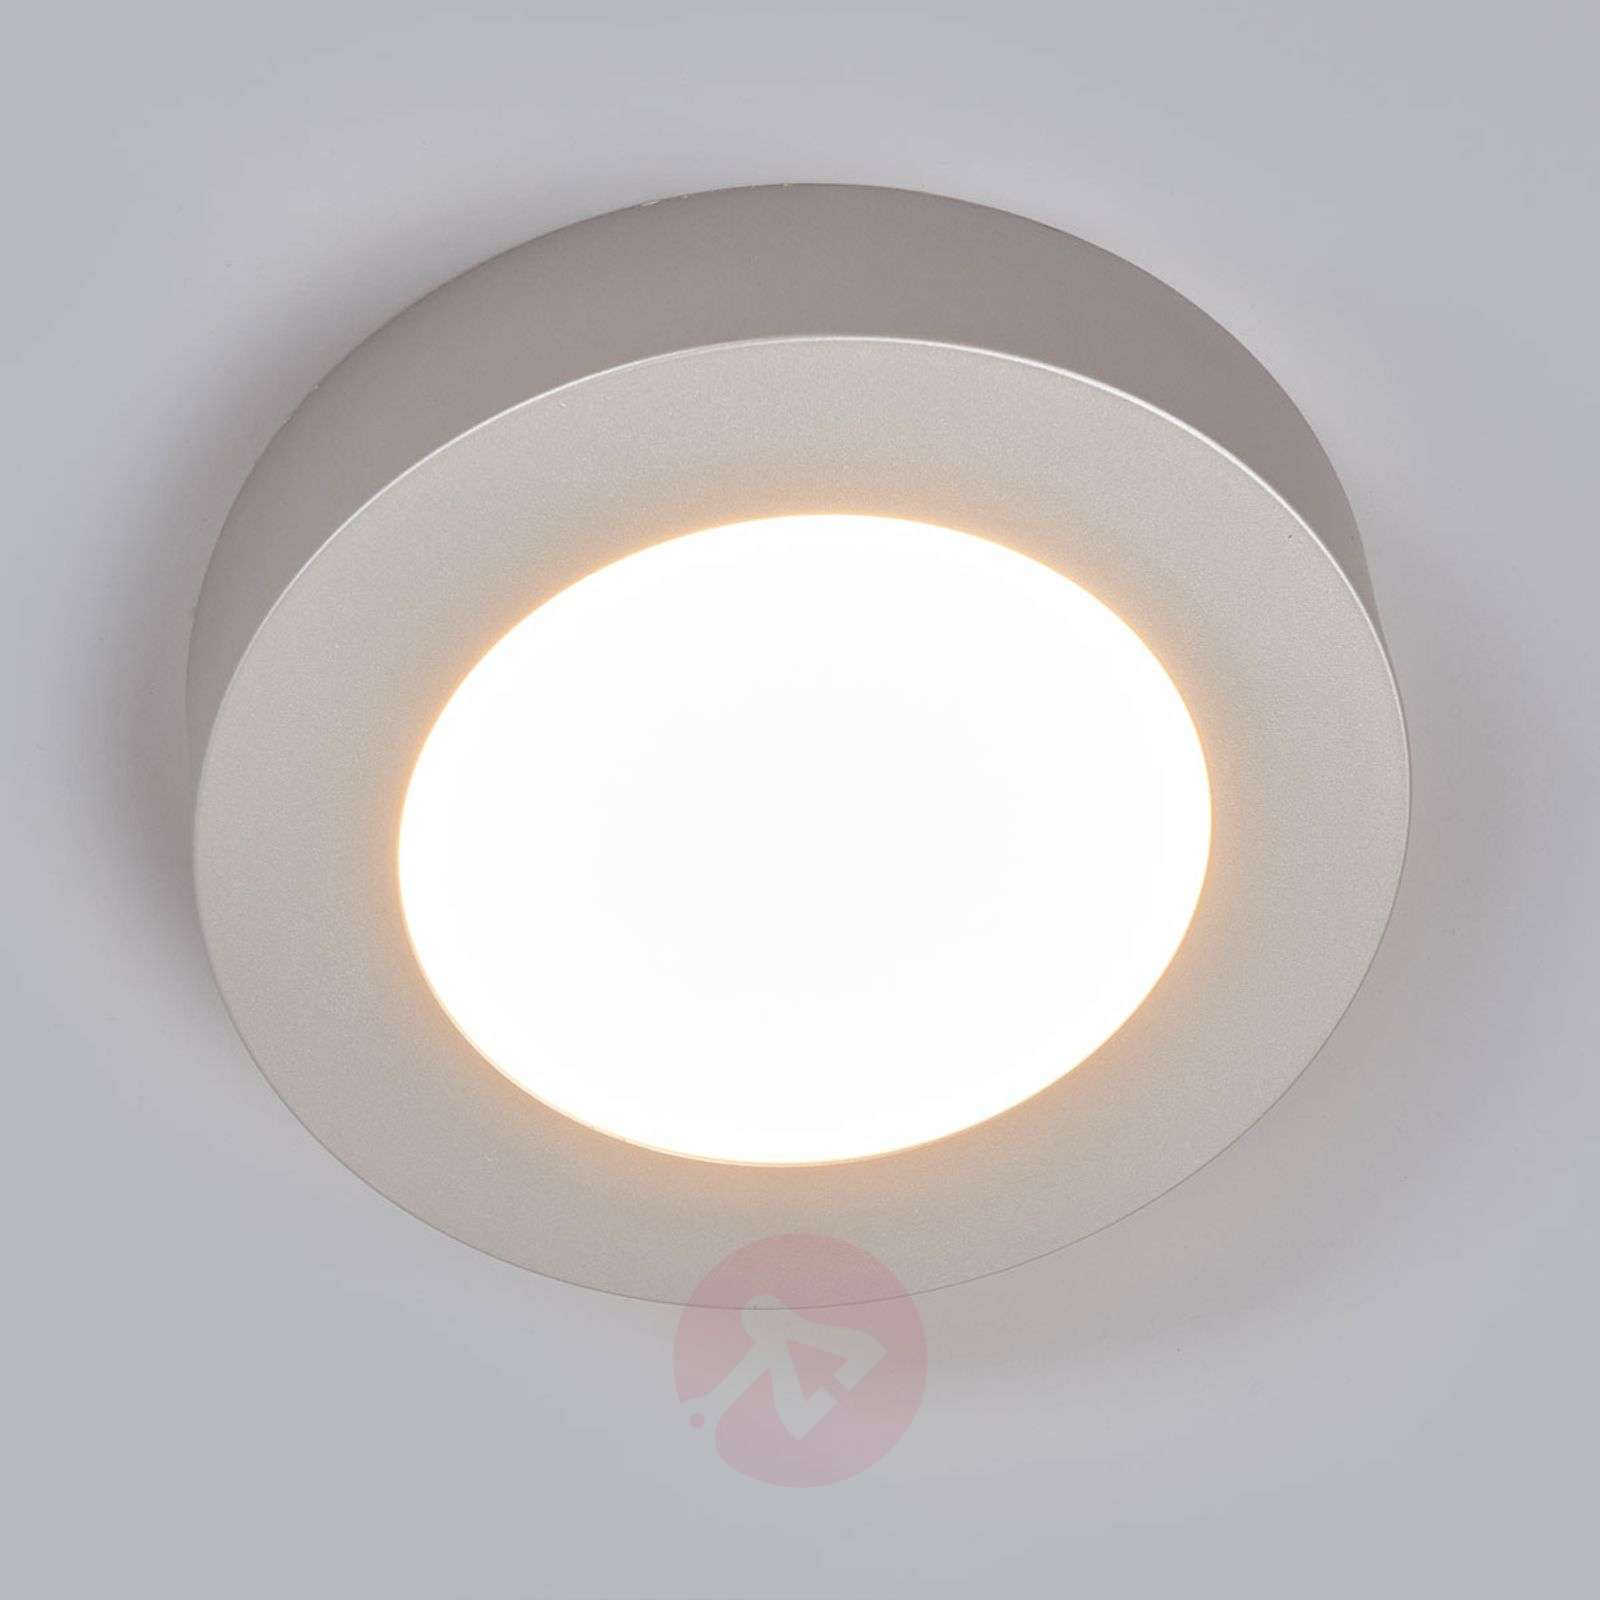 Marlo - bathroom ceiling lamp with LEDs, IP44 | Lights.ie